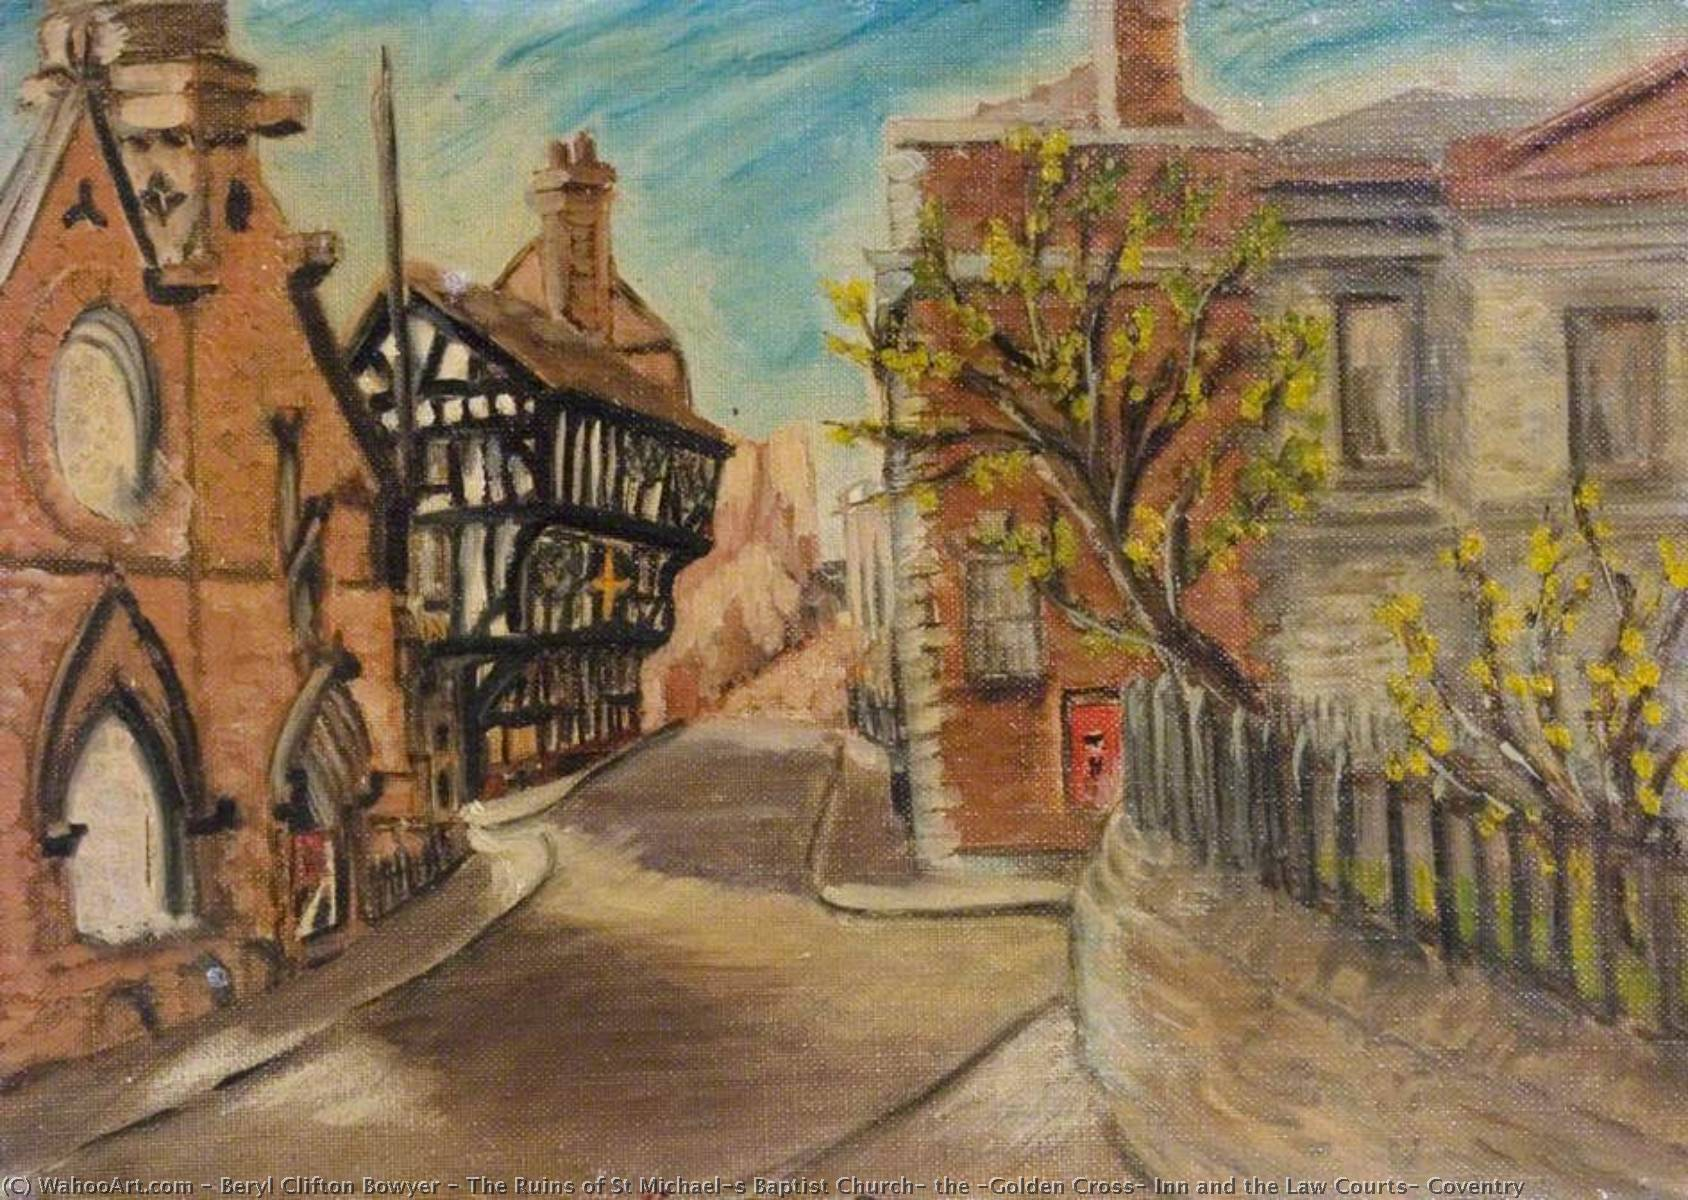 Order Paintings Reproductions | The Ruins of St Michael's Baptist Church, the 'Golden Cross' Inn and the Law Courts, Coventry by Beryl Clifton Bowyer | Most-Famous-Paintings.com